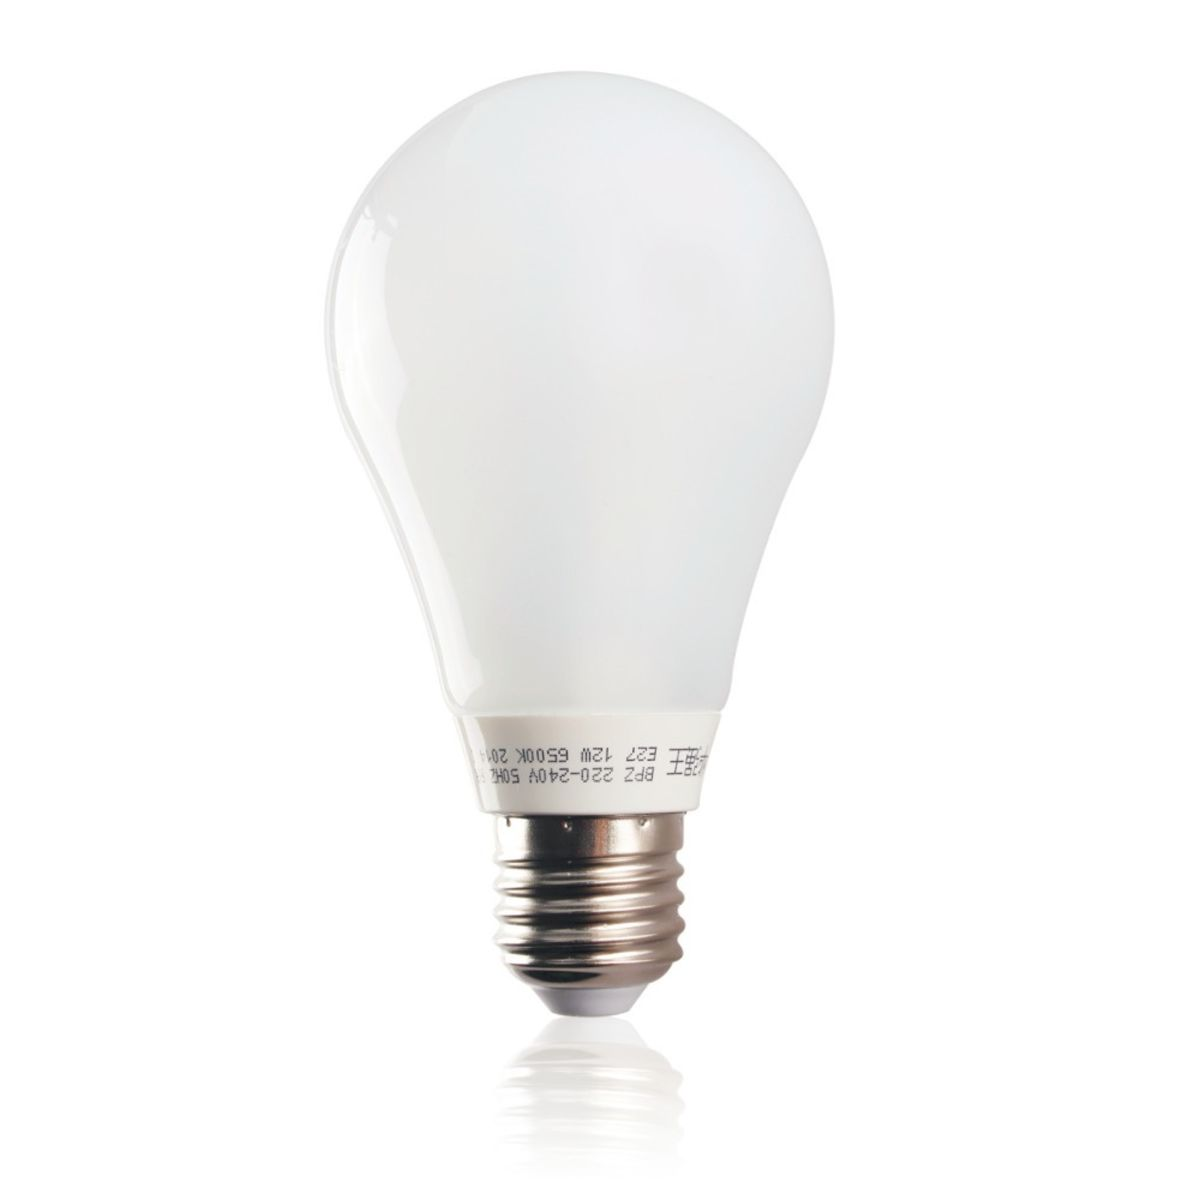 Headline for The different LED bulbs - e14, e27, gu10